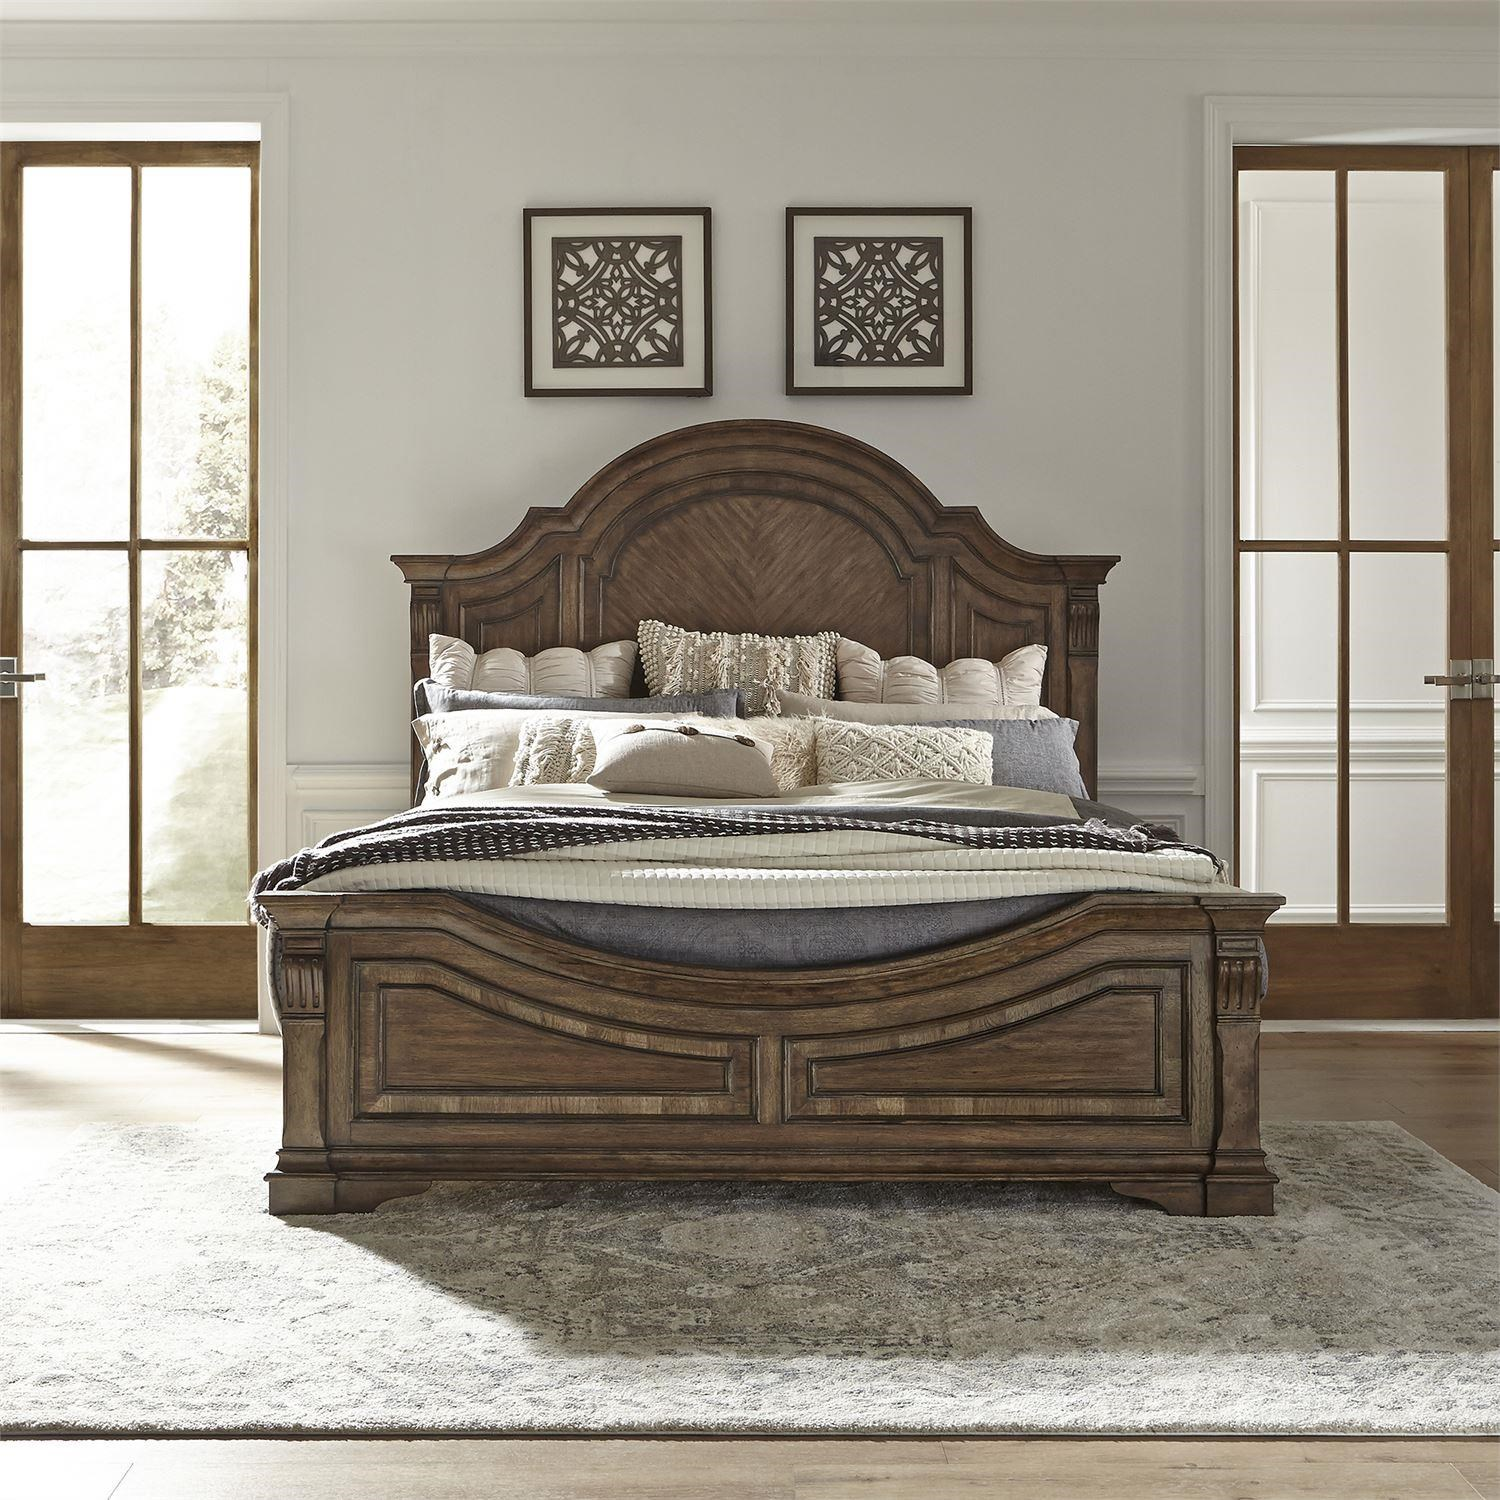 King Panel Bed w/Rails